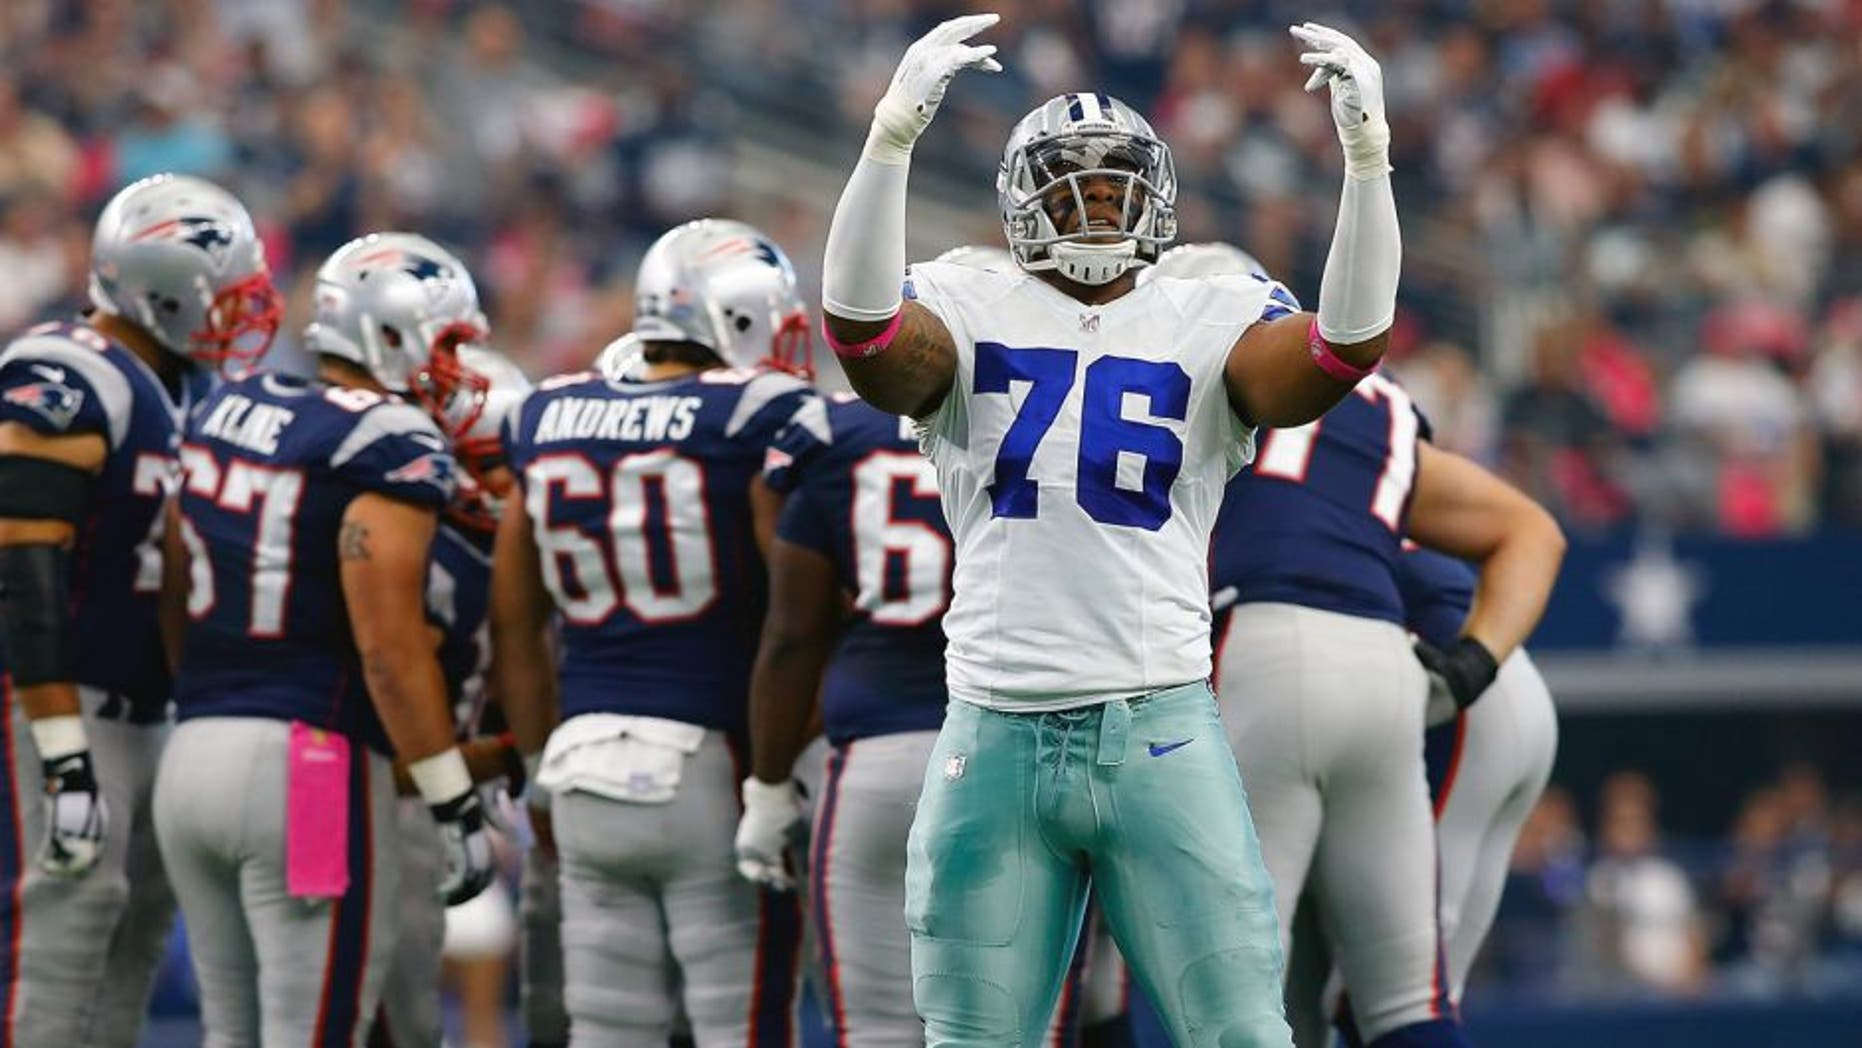 ARLINGTON, TX - OCTOBER 11: Greg Hardy #76 of the Dallas Cowboys encourages the crowd to make noise during the first half of the NFL game against the New England Patriots at AT&T Stadium on October 11, 2015 in Arlington, Texas. (Photo by Mike Stone/Getty Images)